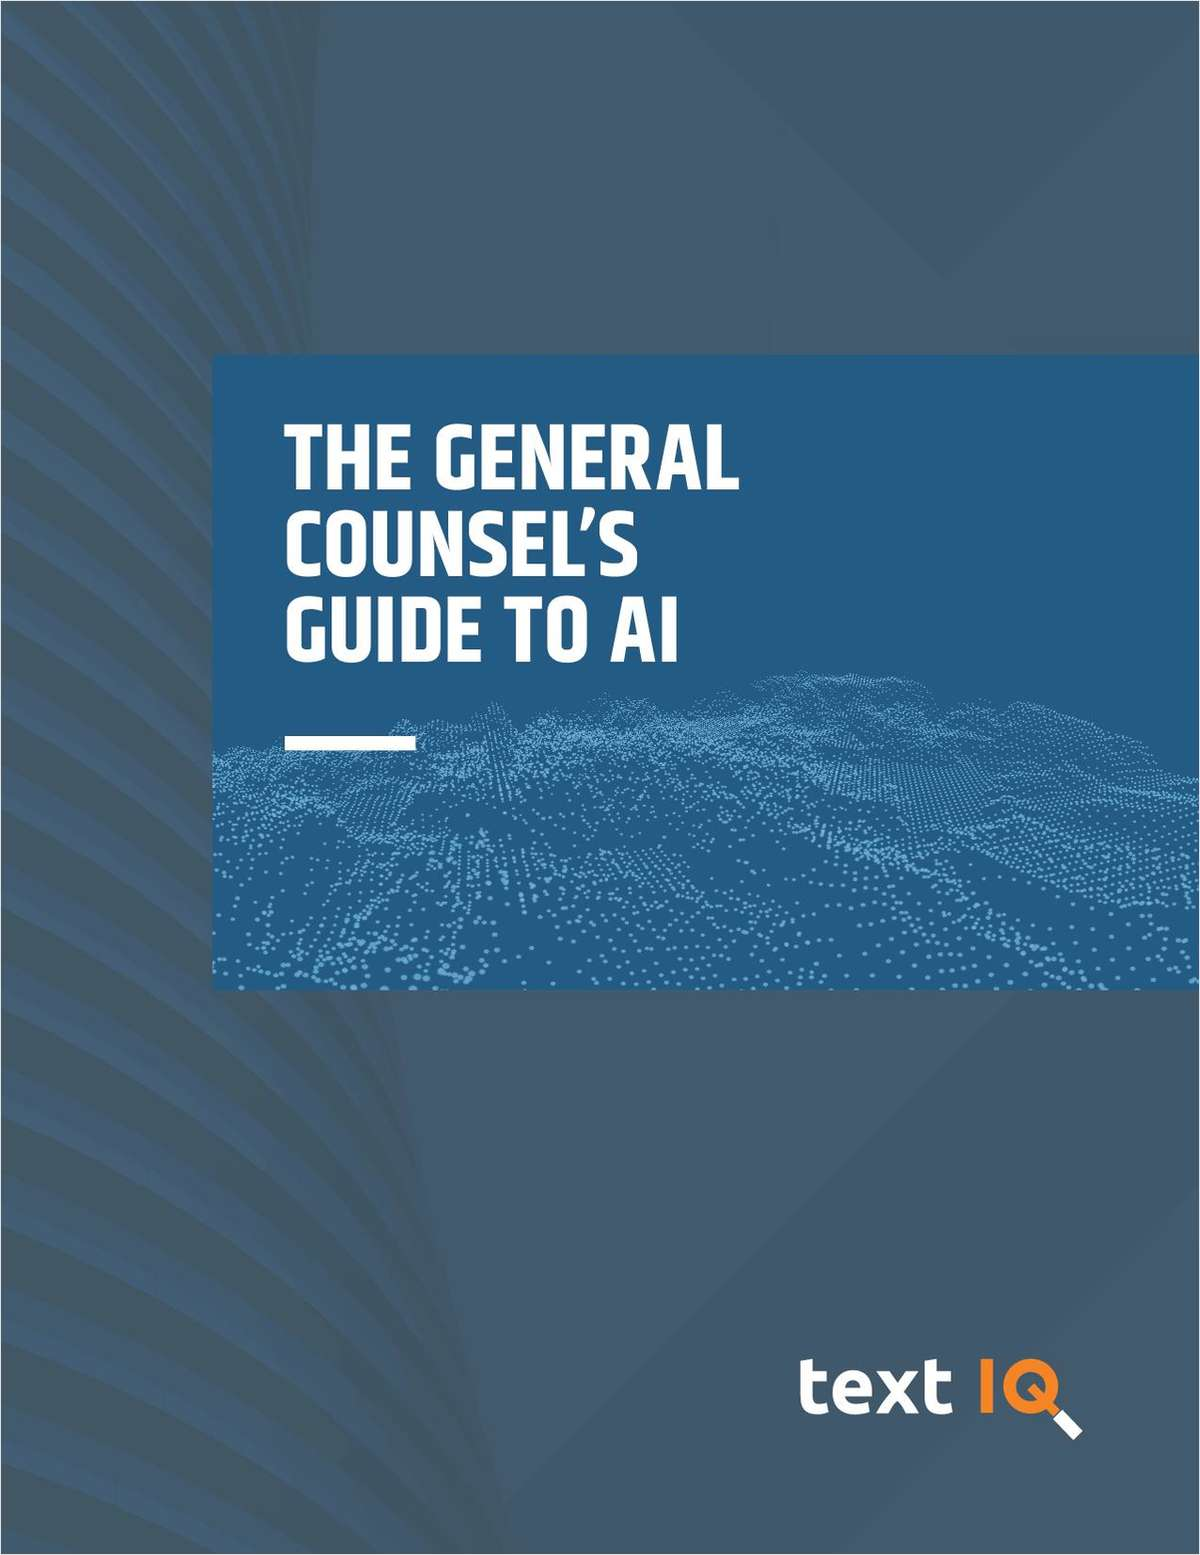 The General Counsel's Guide to AI